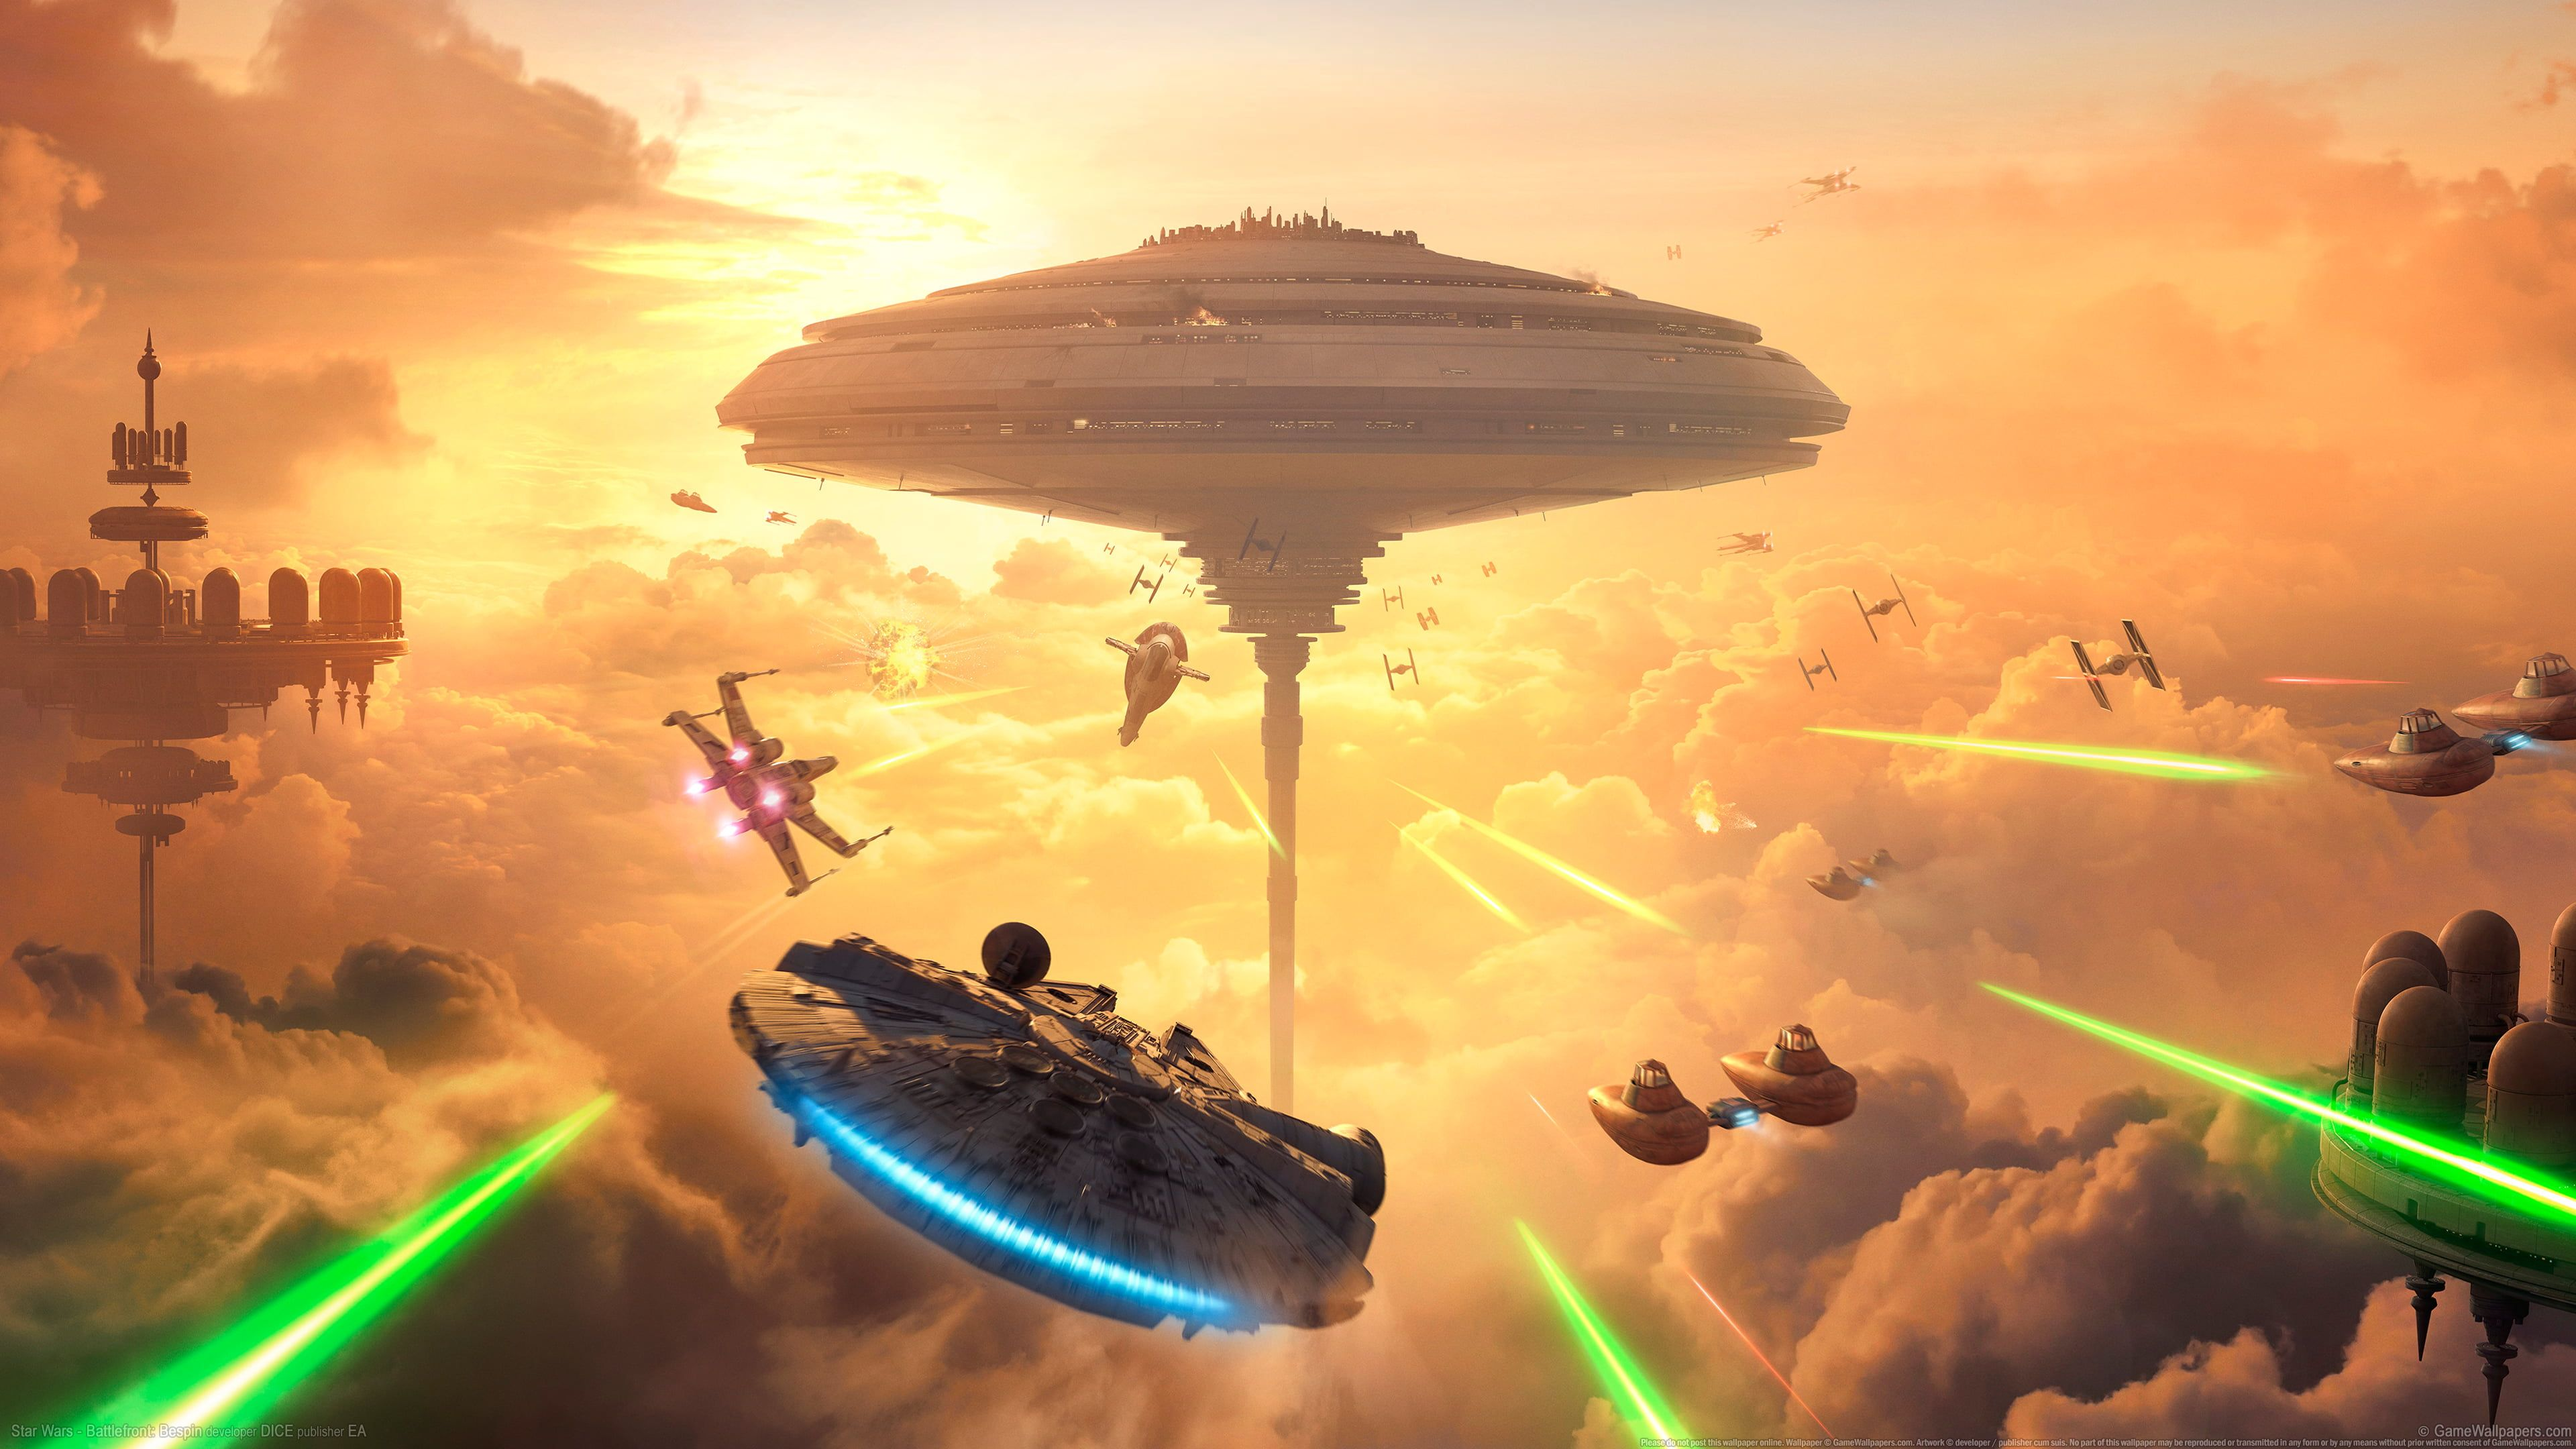 Star Wars Millennium Falcon Digital Wallpaper Star Wars Battlefront Bespin Millennium Falcon Cloud City Vide In 2020 Digital Wallpaper Cloud City Star Wars Wallpaper